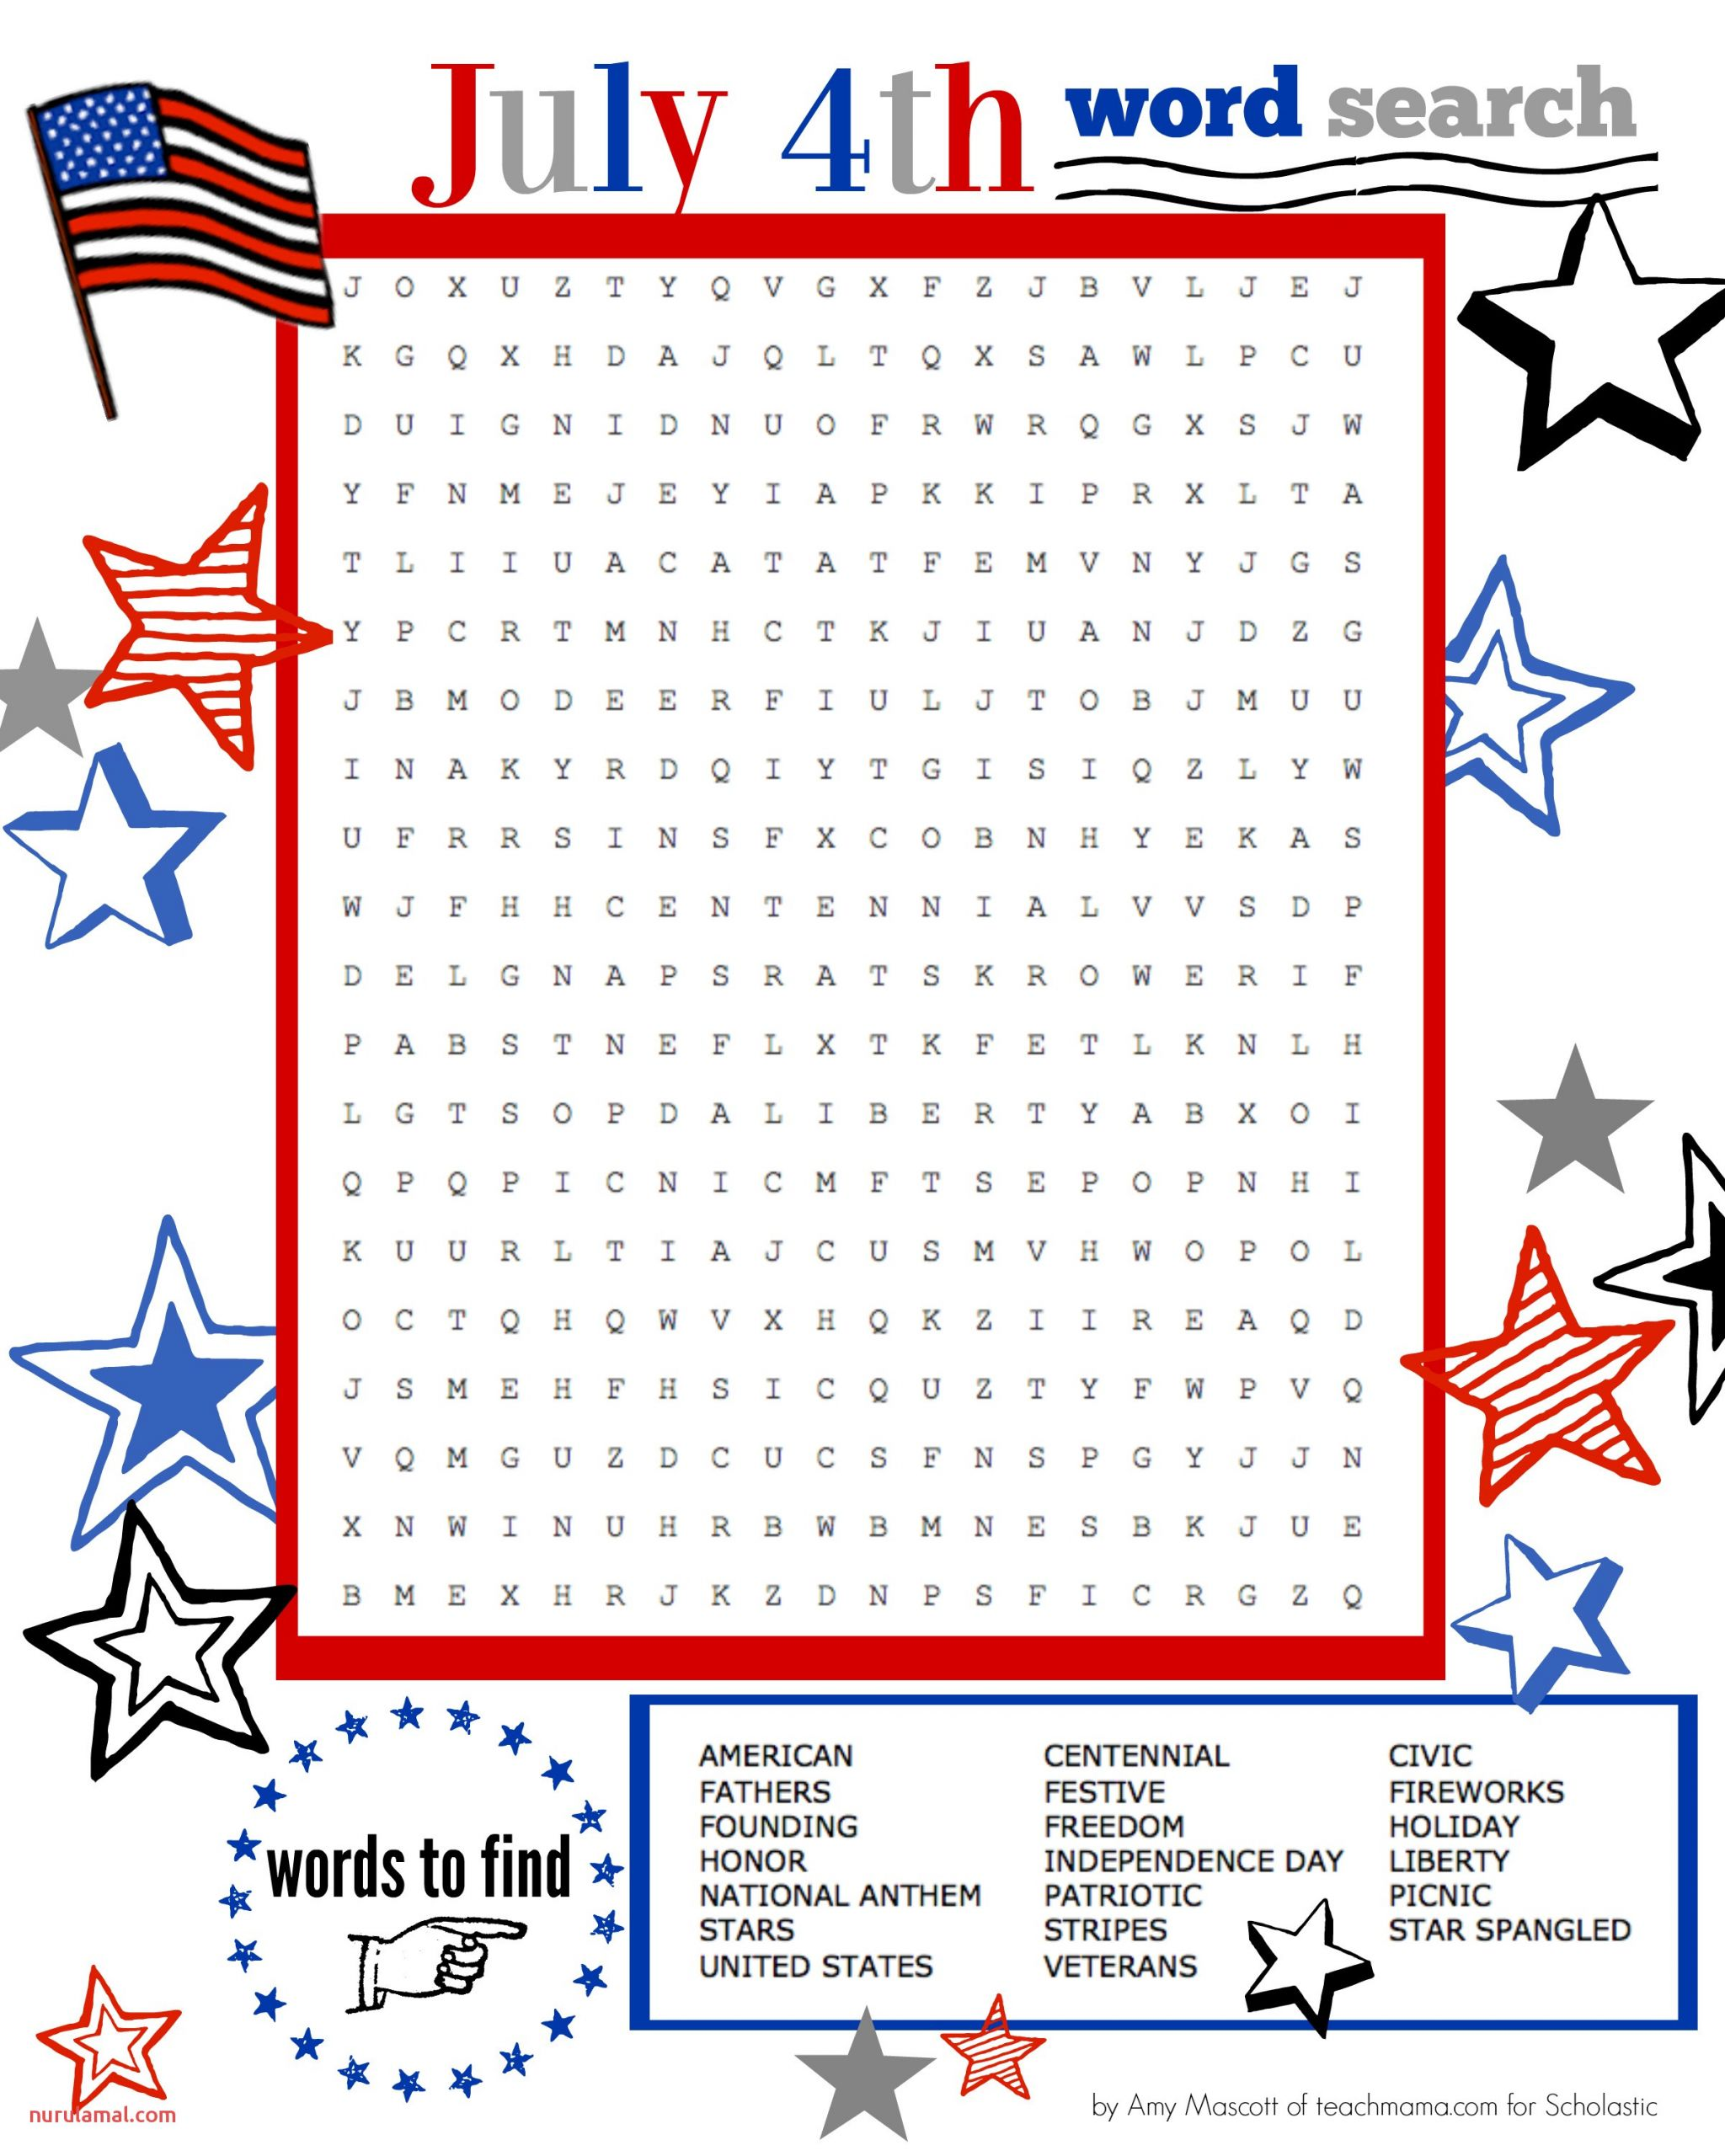 super star celebration july 4th word search printable